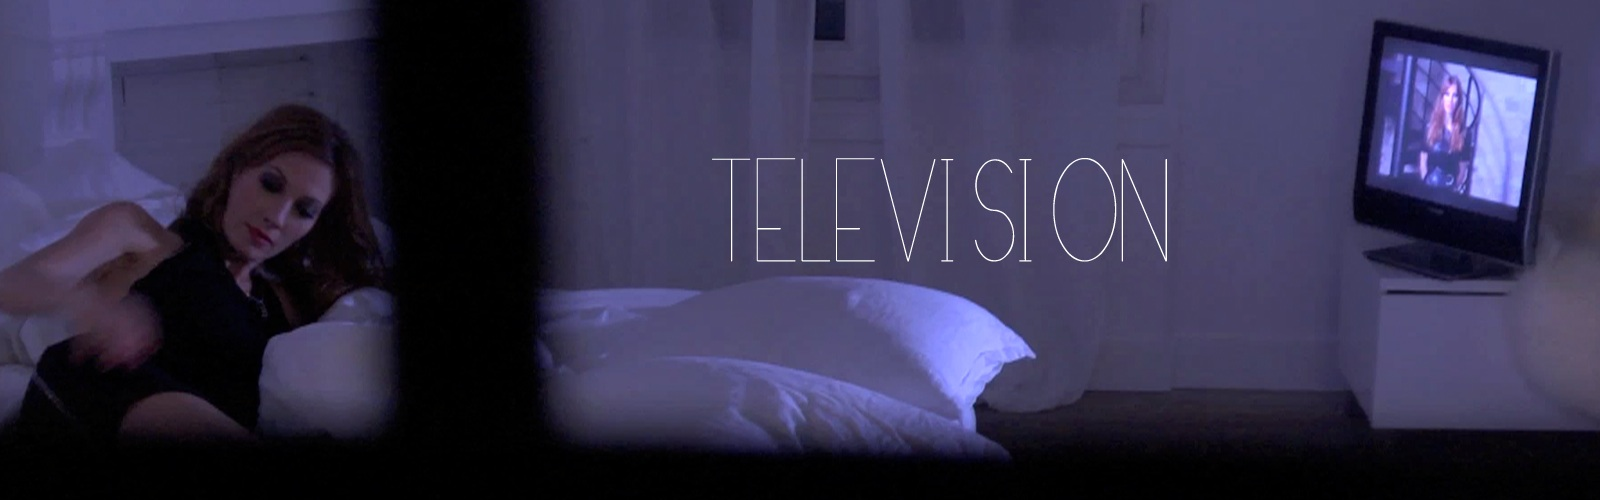 TELEVISION - MAREVA GALANTER - VIDEO - ECRAN